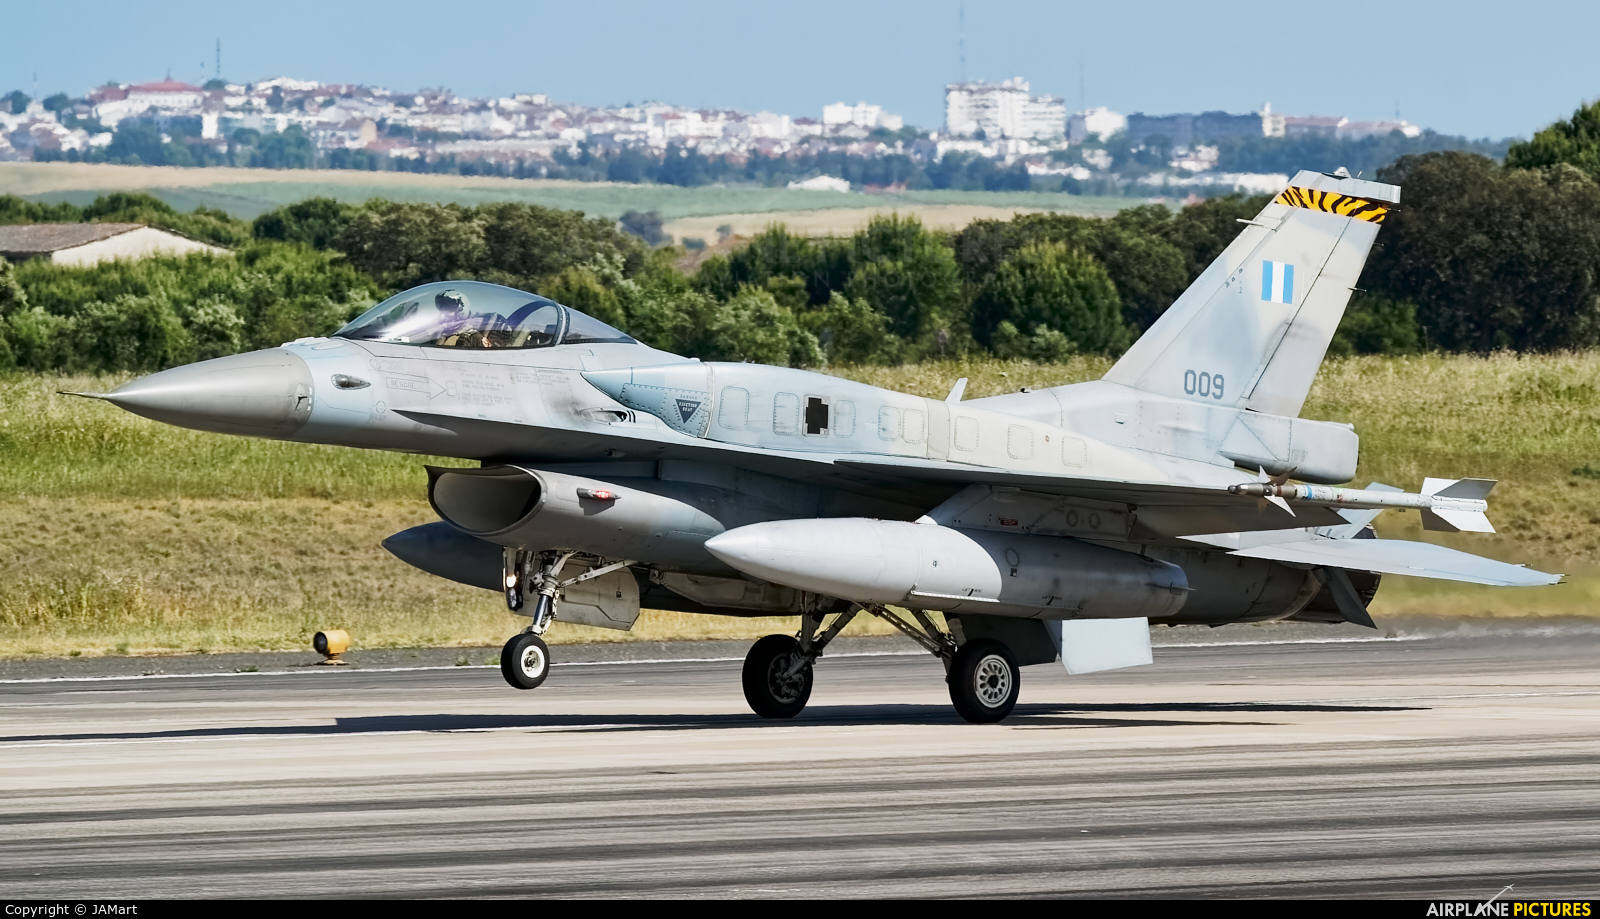 Greece - Hellenic Air Force 009 aircraft at Beja AB